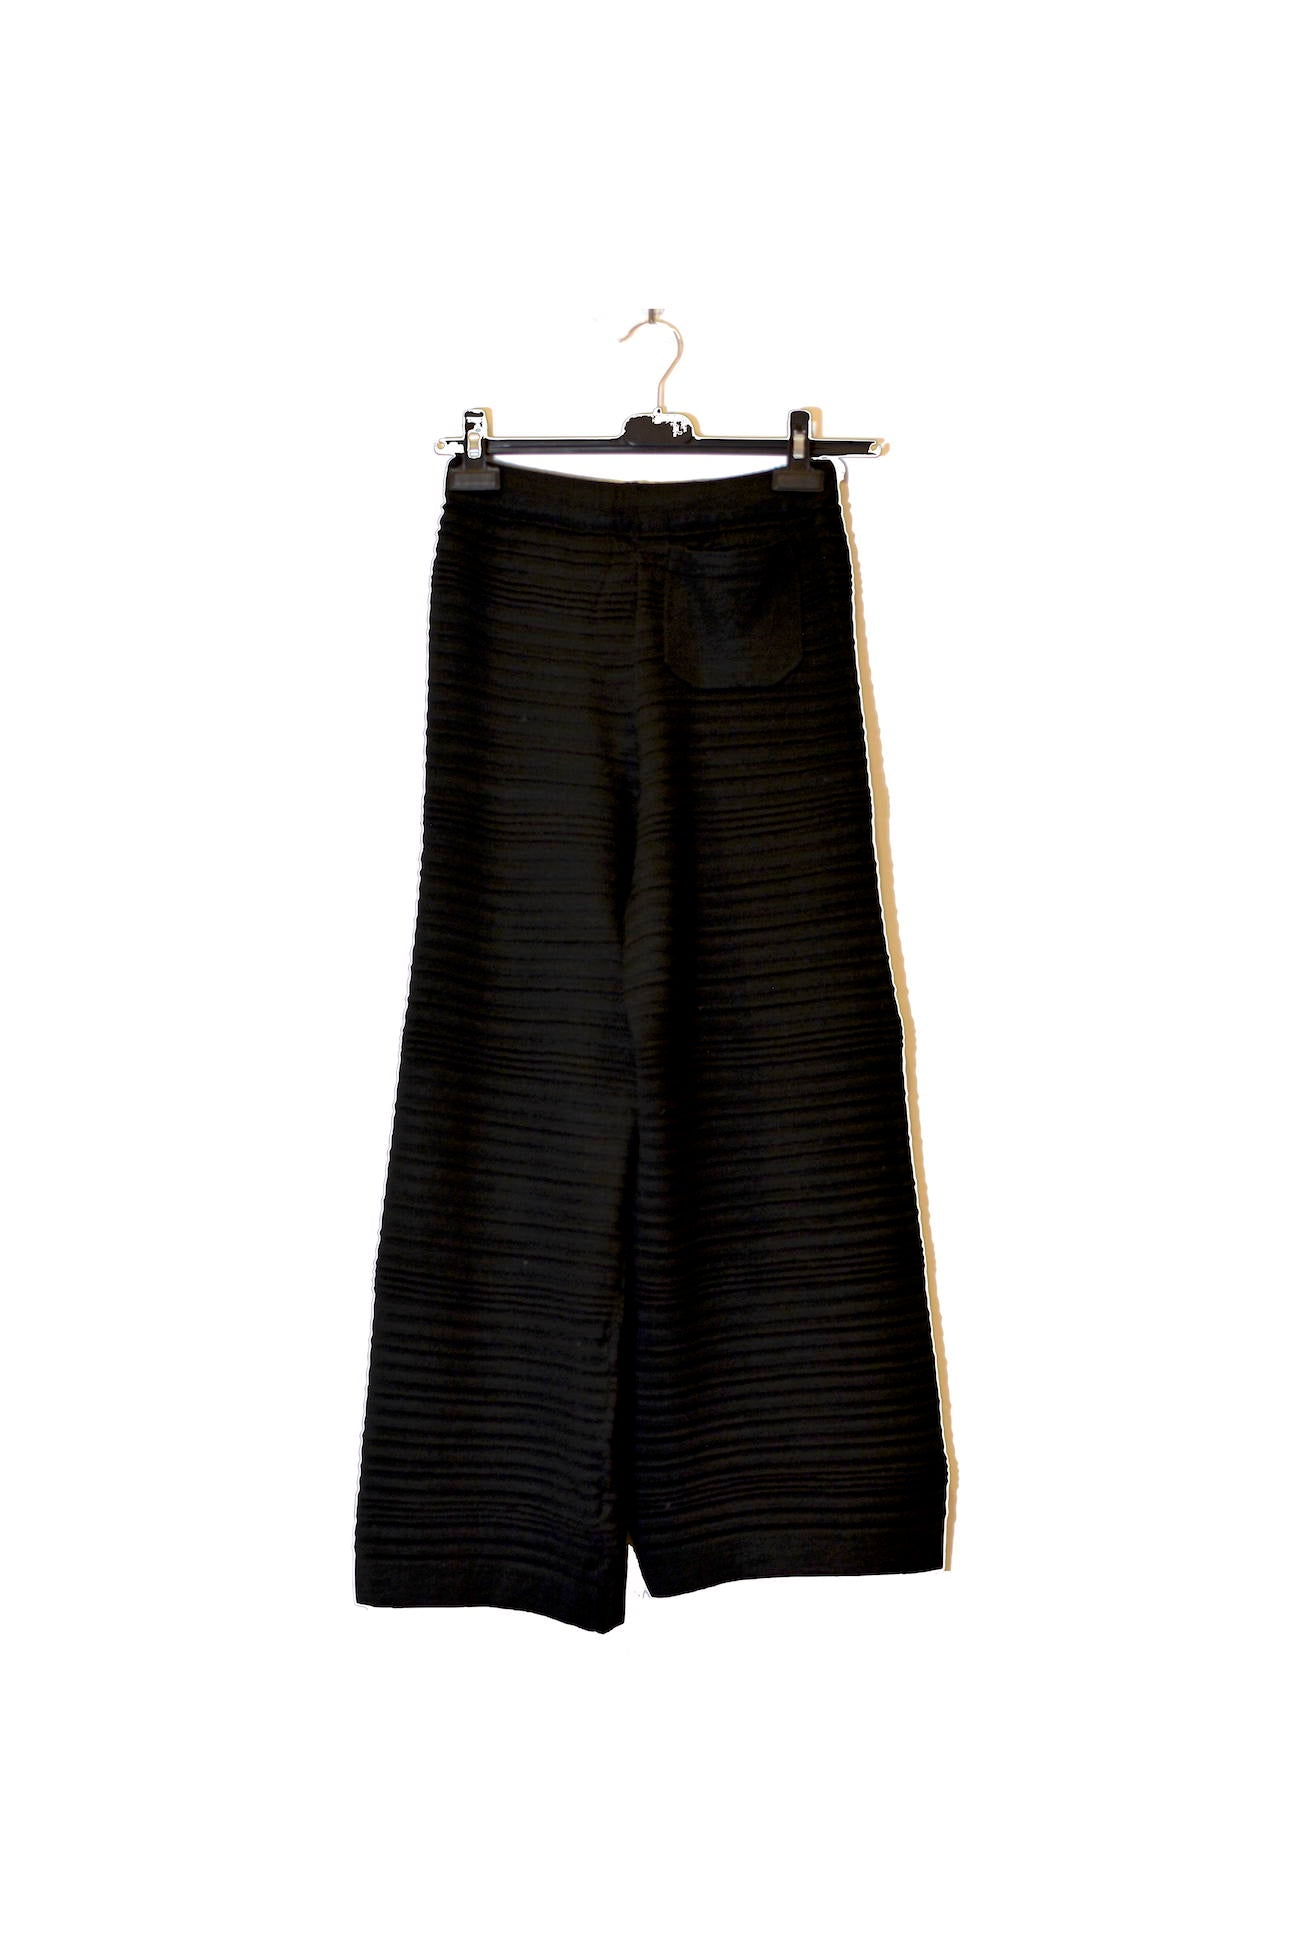 Black Wide Leg Striped Pants With Adjustable Waistband